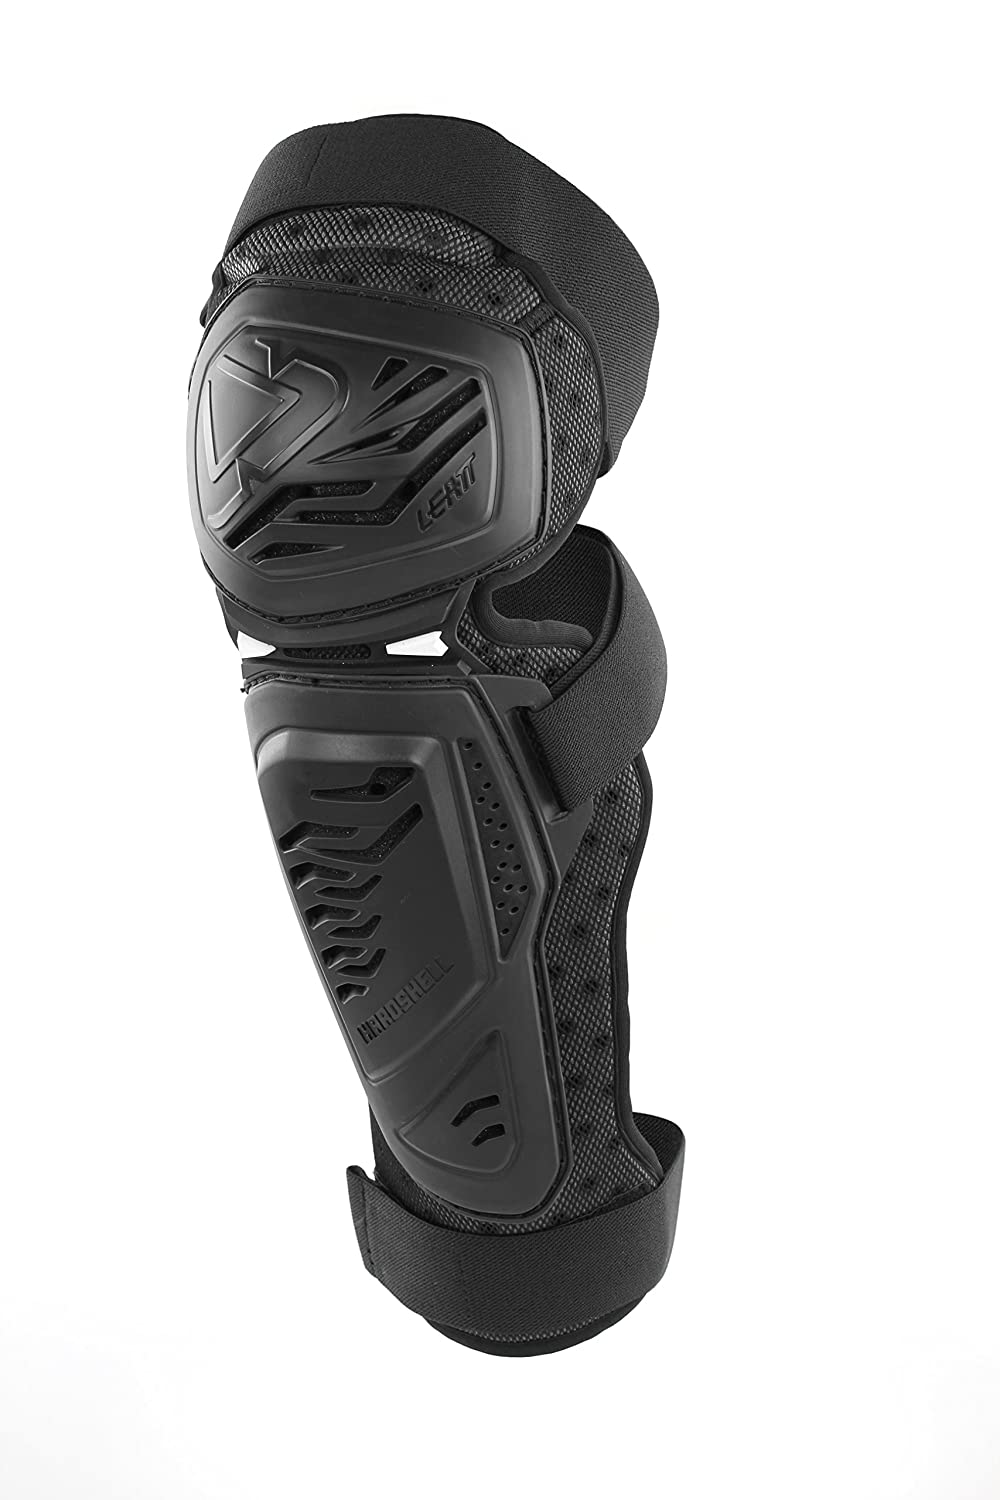 Leatt 3.0 EXT Knee and Shin Guard (Black, Small/Medium) 5016000400